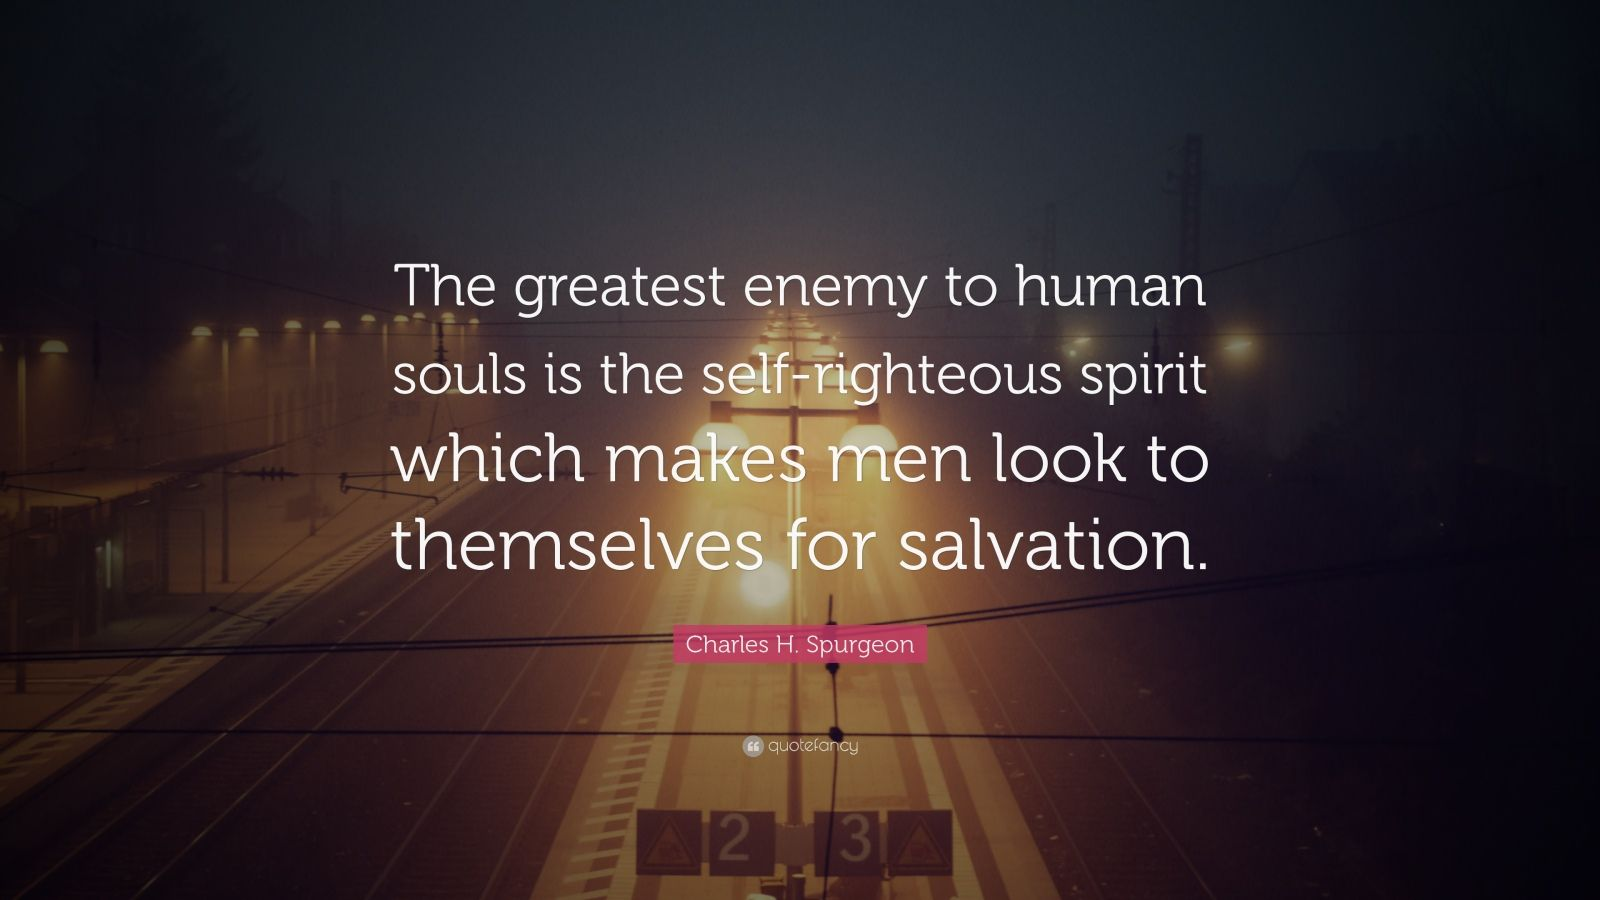 Enemy Wallpaper Quotes Charles H Spurgeon Quote The Greatest Enemy To Human